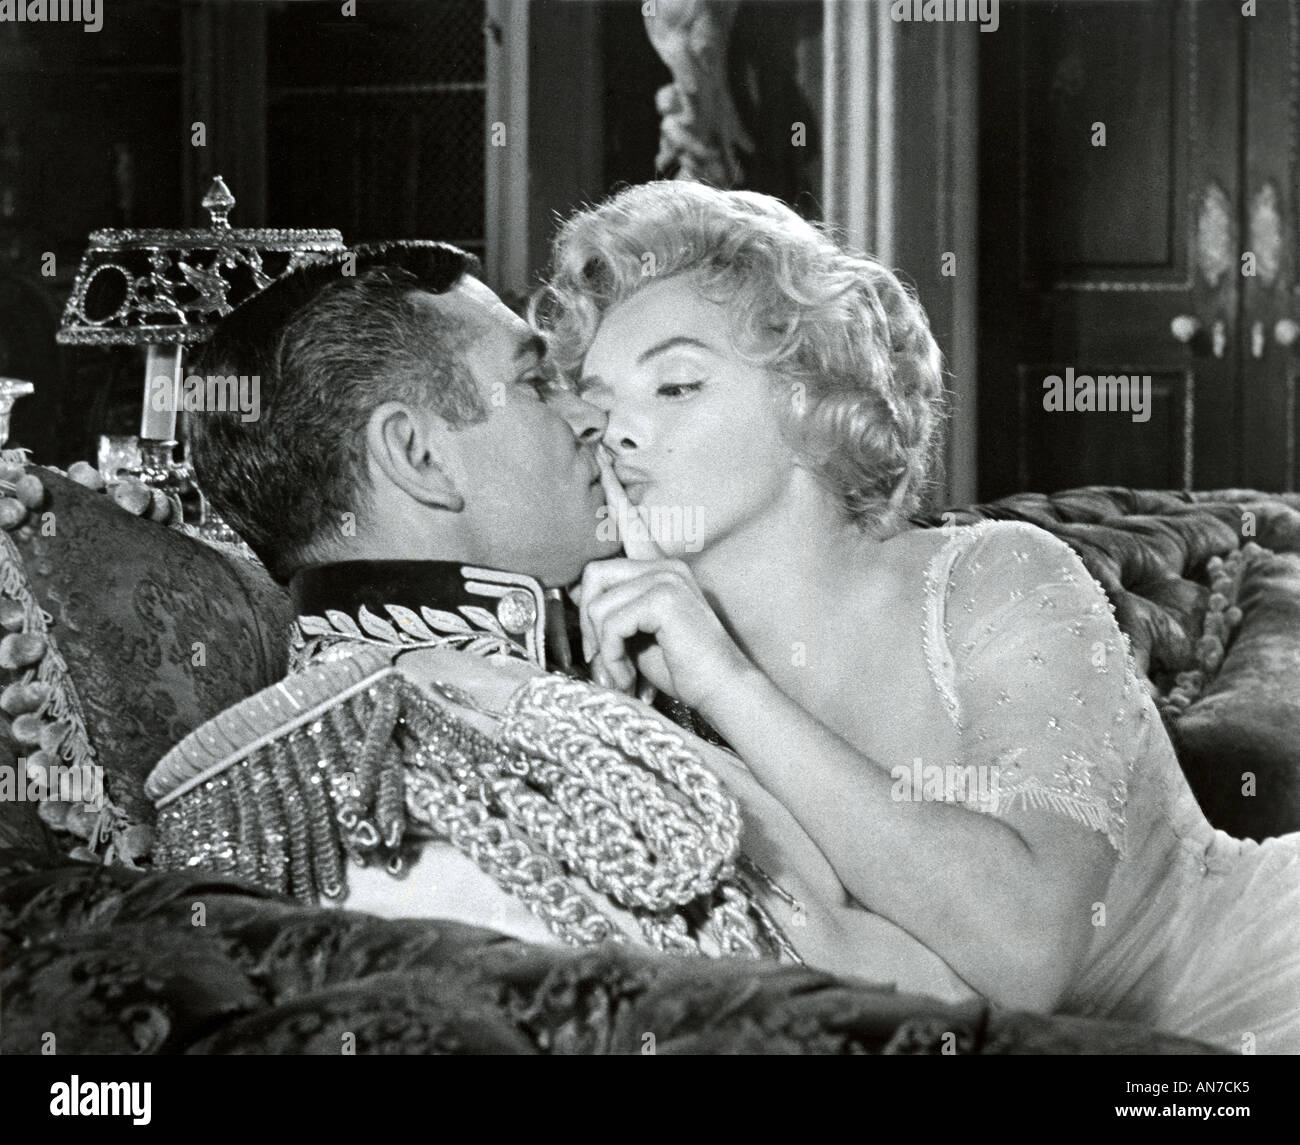 PRINCE AND THE SHOWGIRL 1957 Warner film with Laurence Olivier and Marilyn Monroe - Stock Image